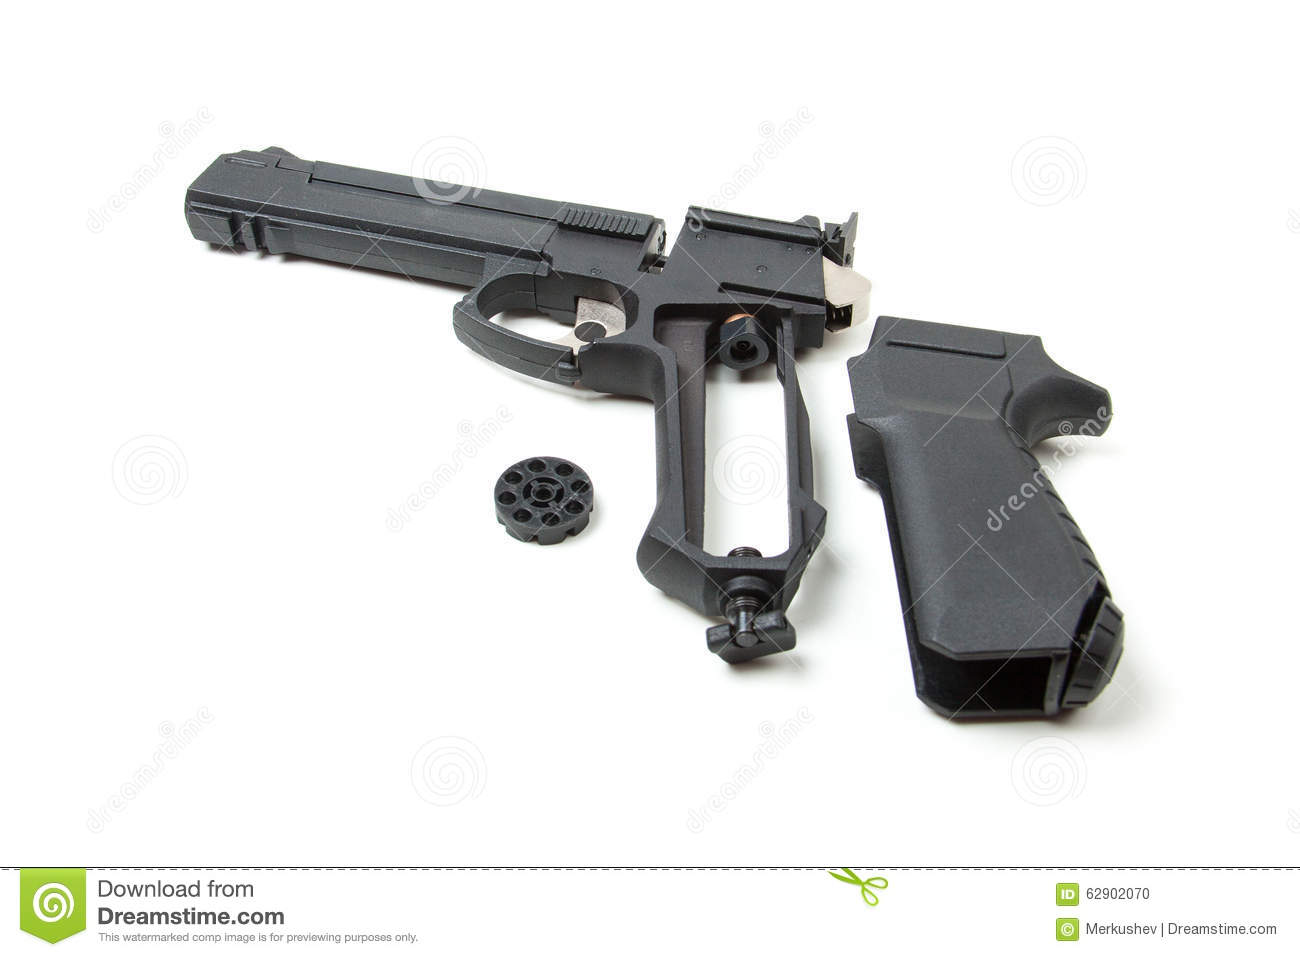 gun white background - photo #42